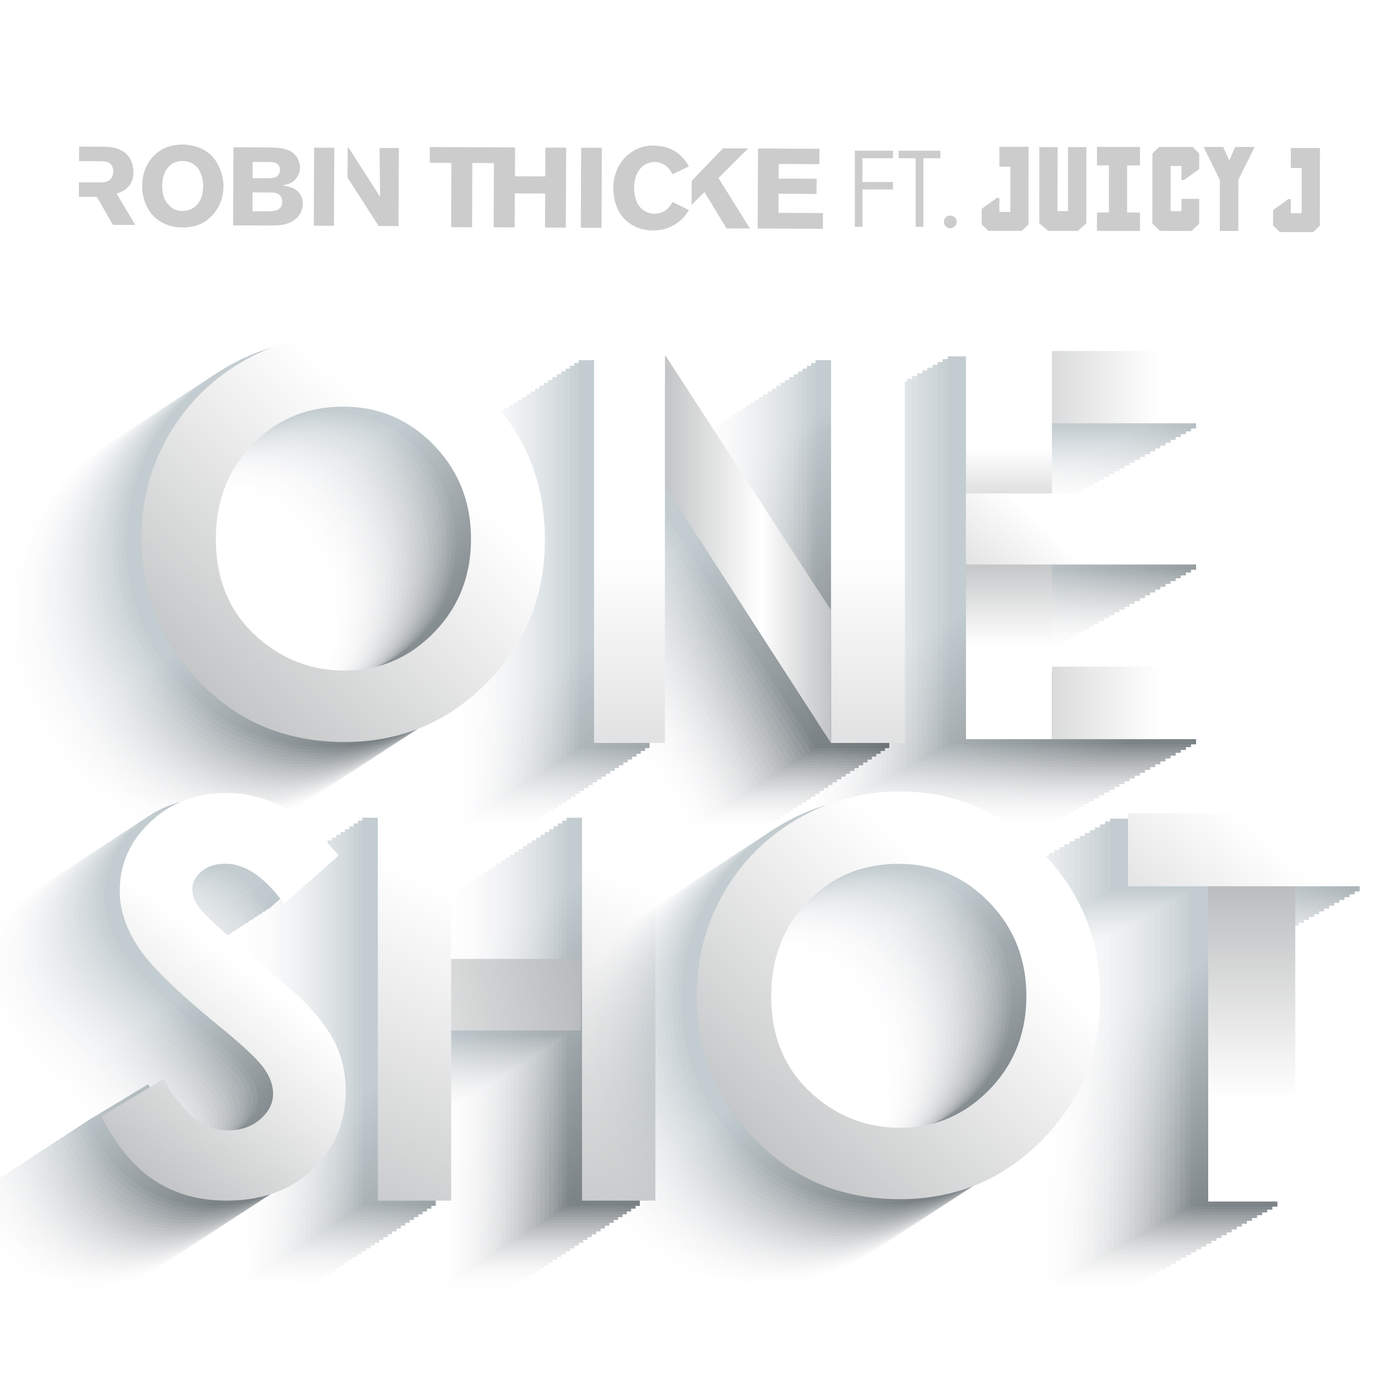 Robin Thicke - One Shot (feat. Juicy J) - Single Cover